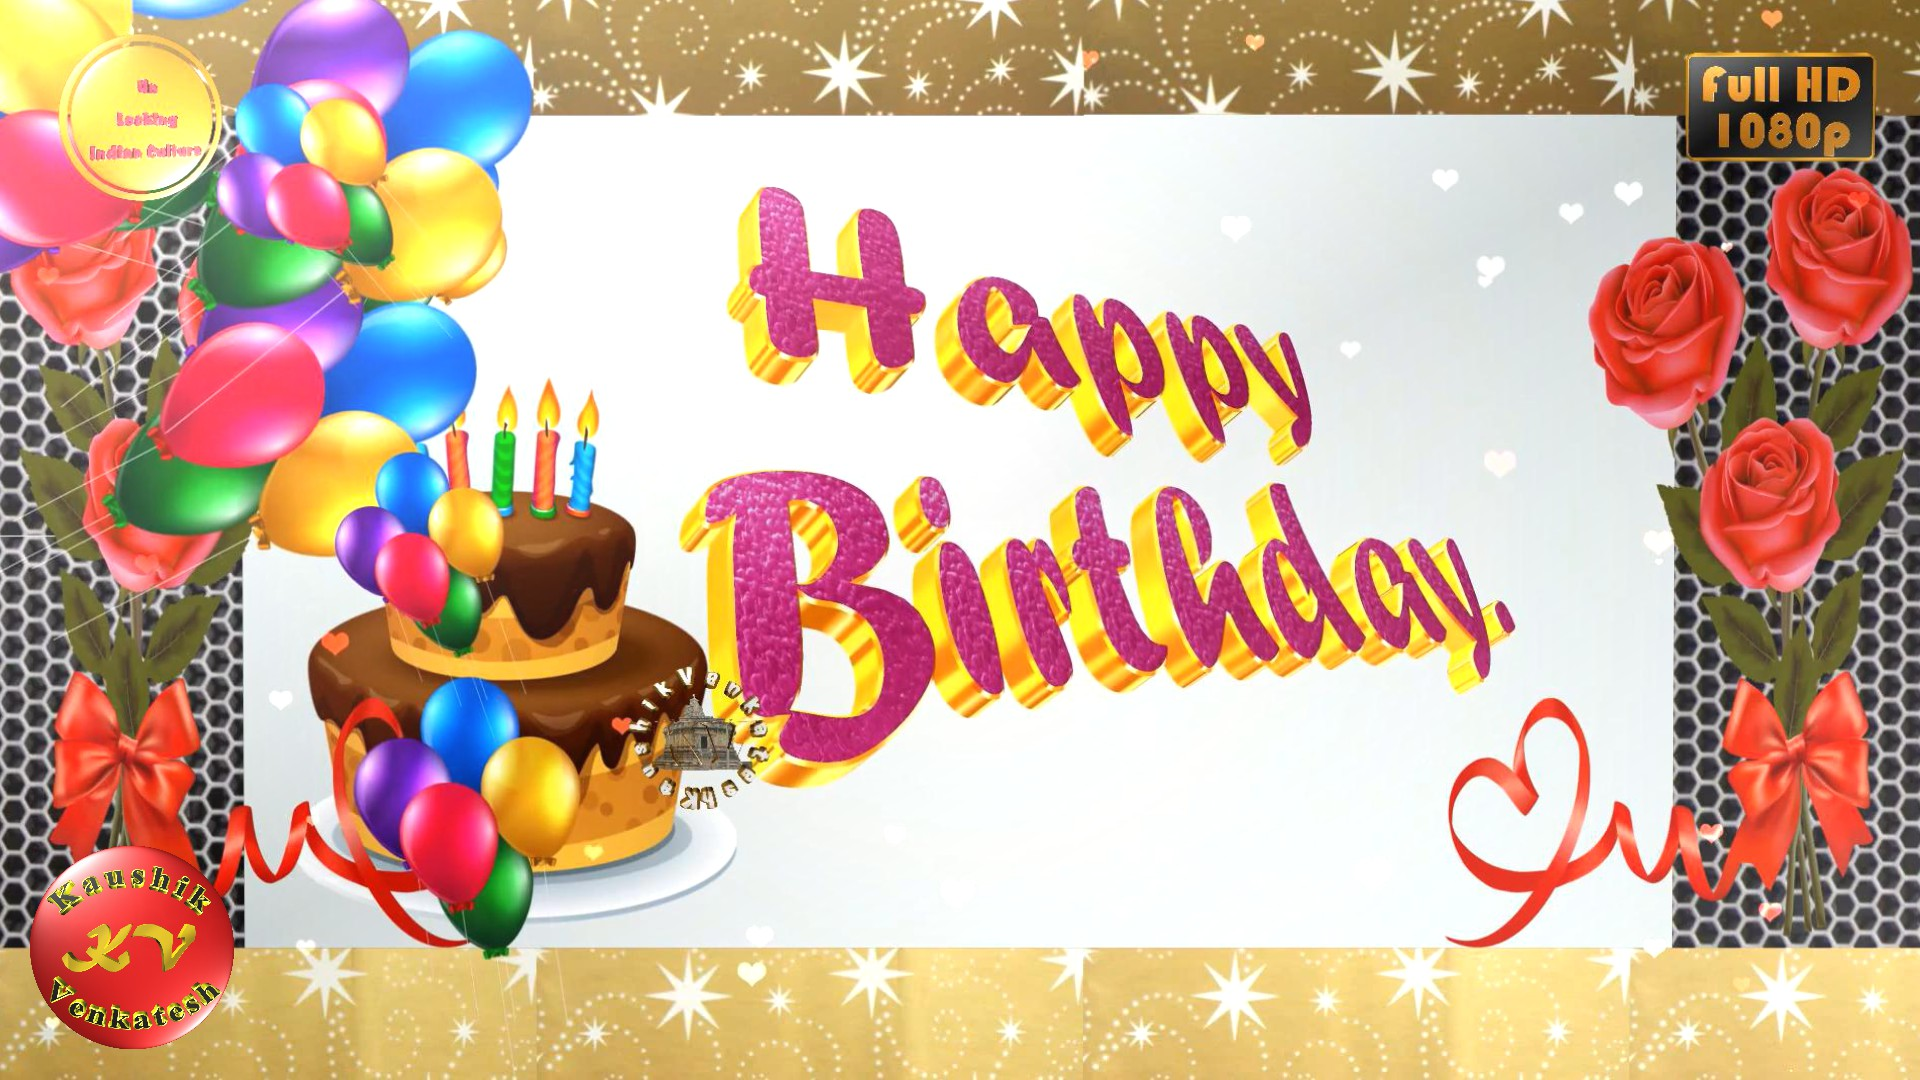 Greetings Image for the Birthday (Special Occasion).